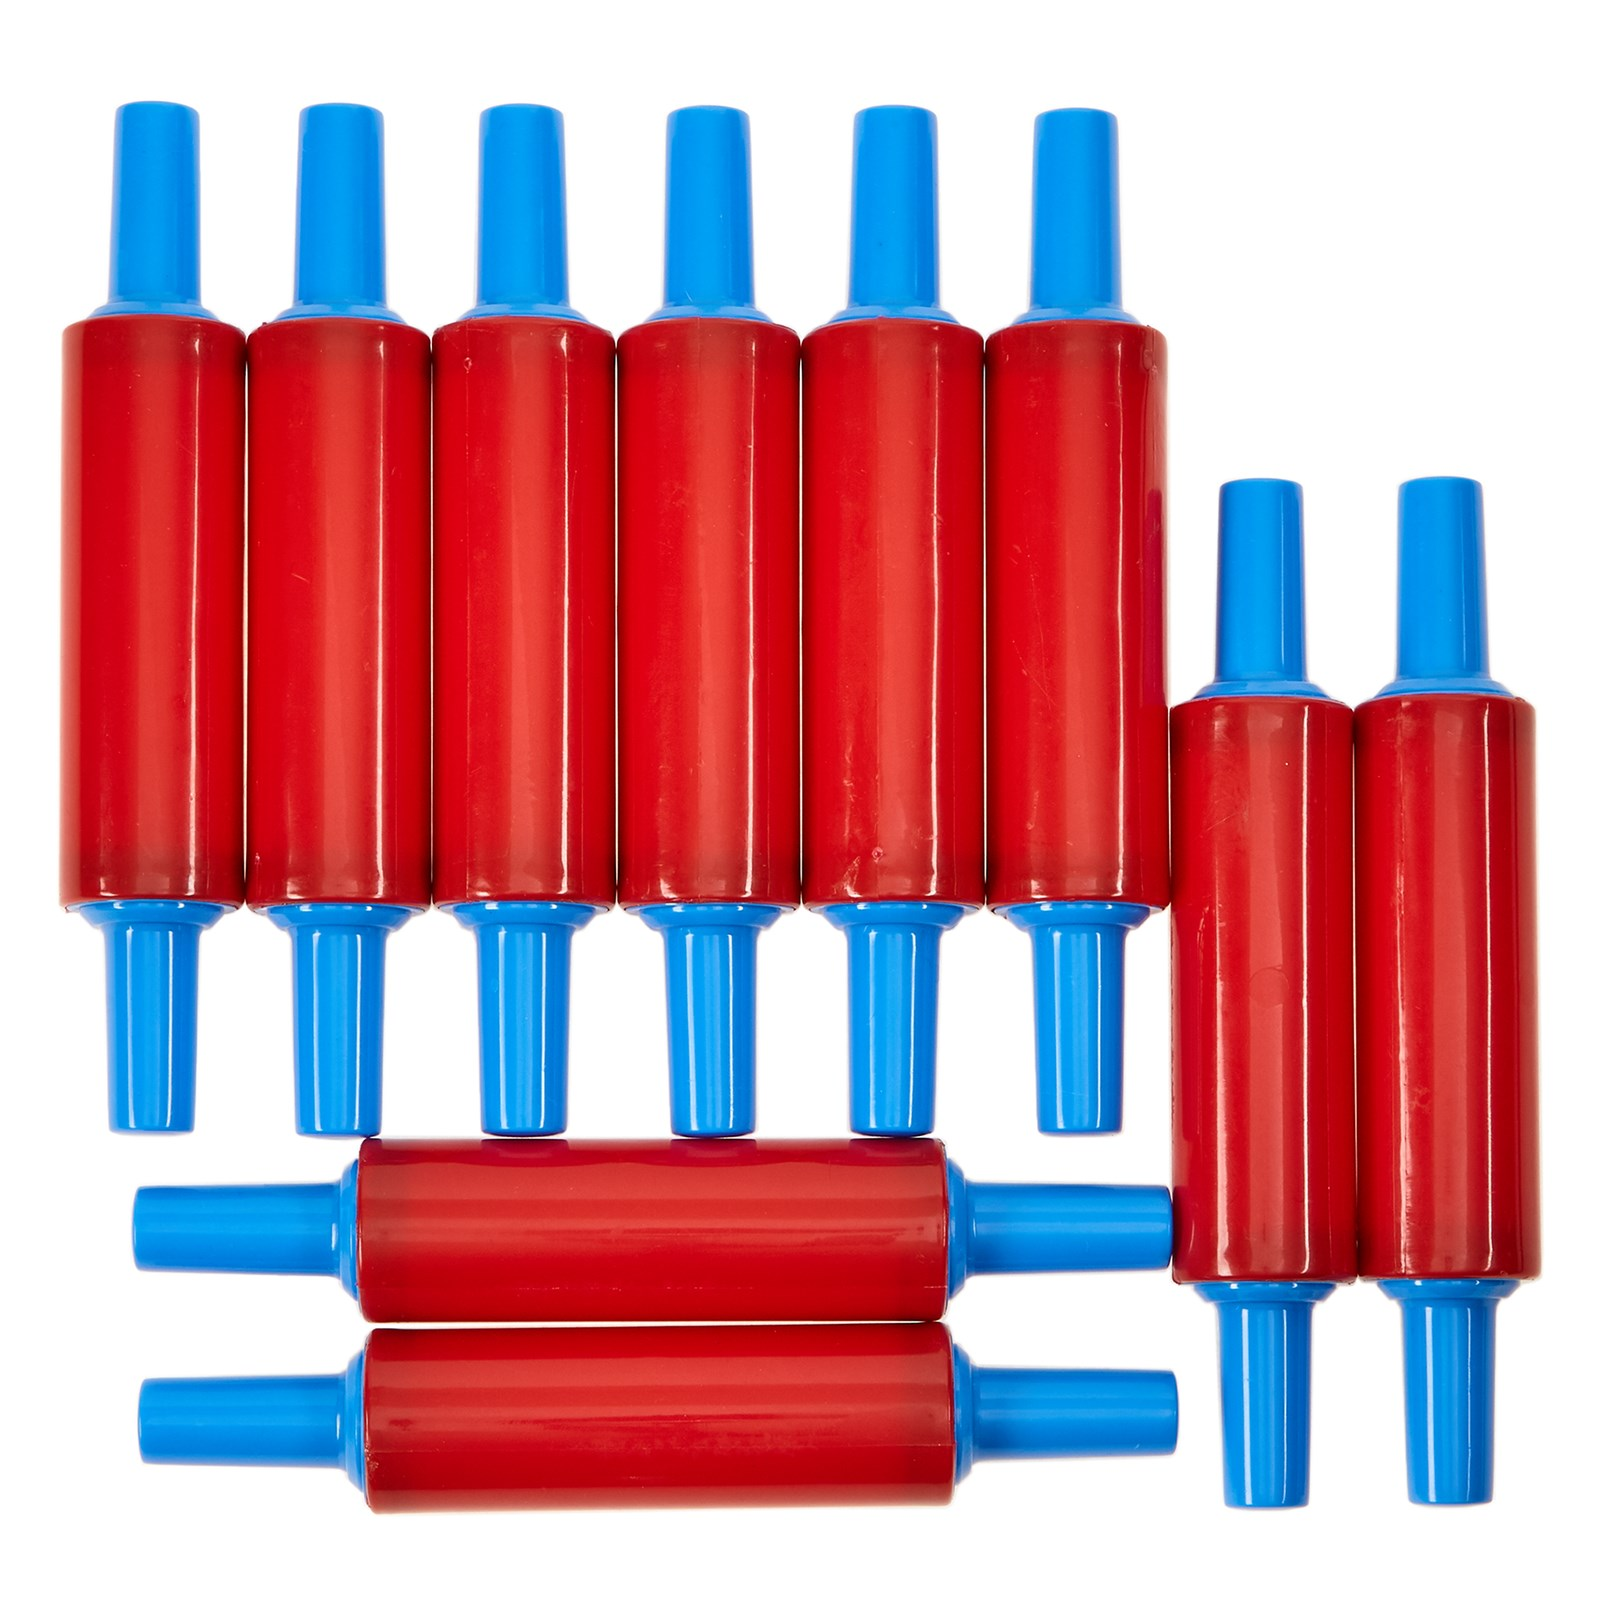 Plastic Rolling Pins Pack of 10